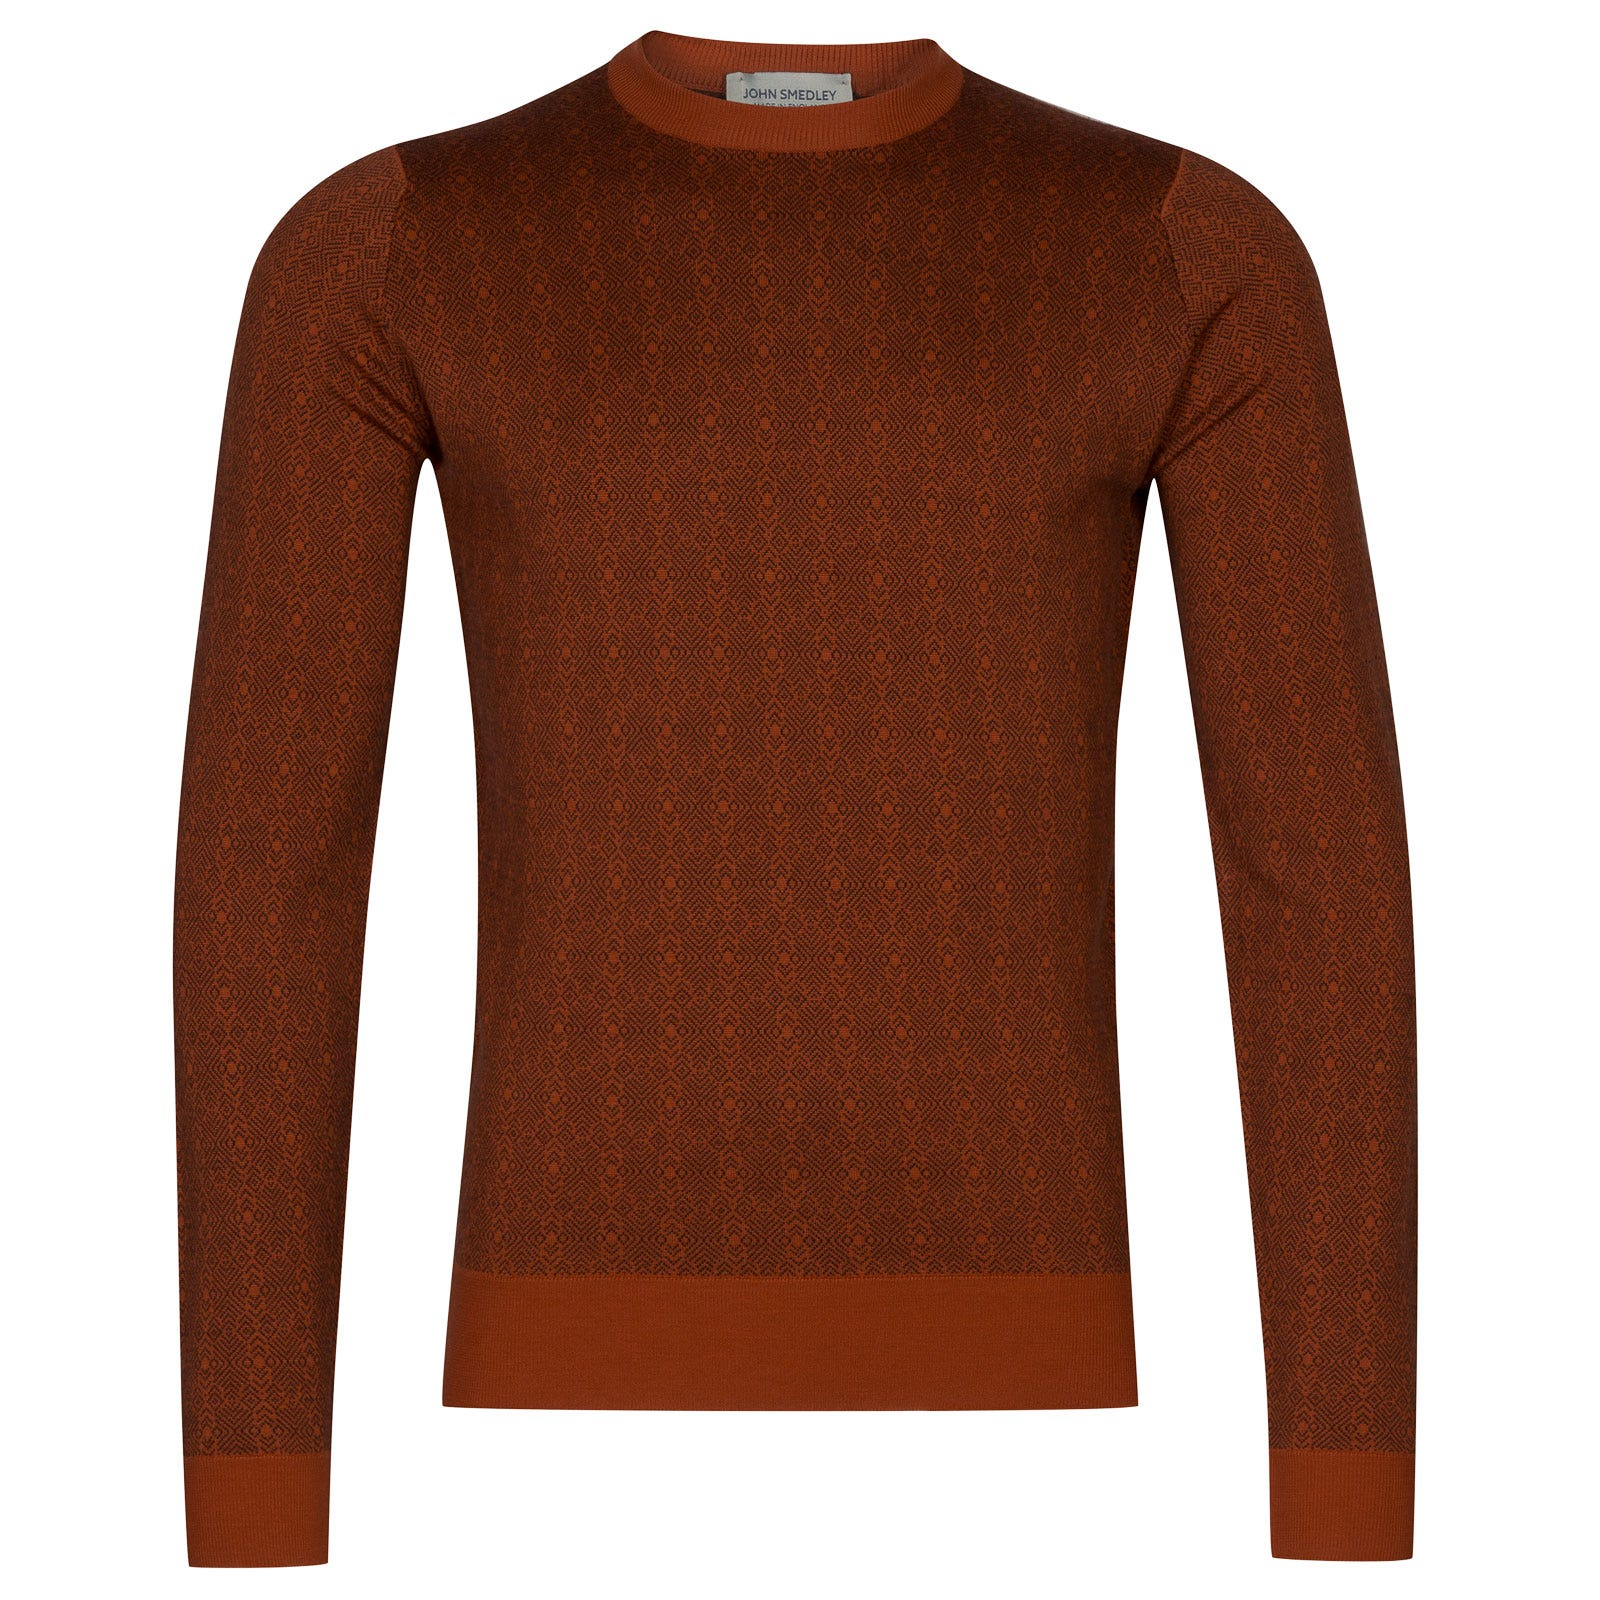 John Smedley rutland Merino Wool Pullover in Chestnut/Flare Orange-S